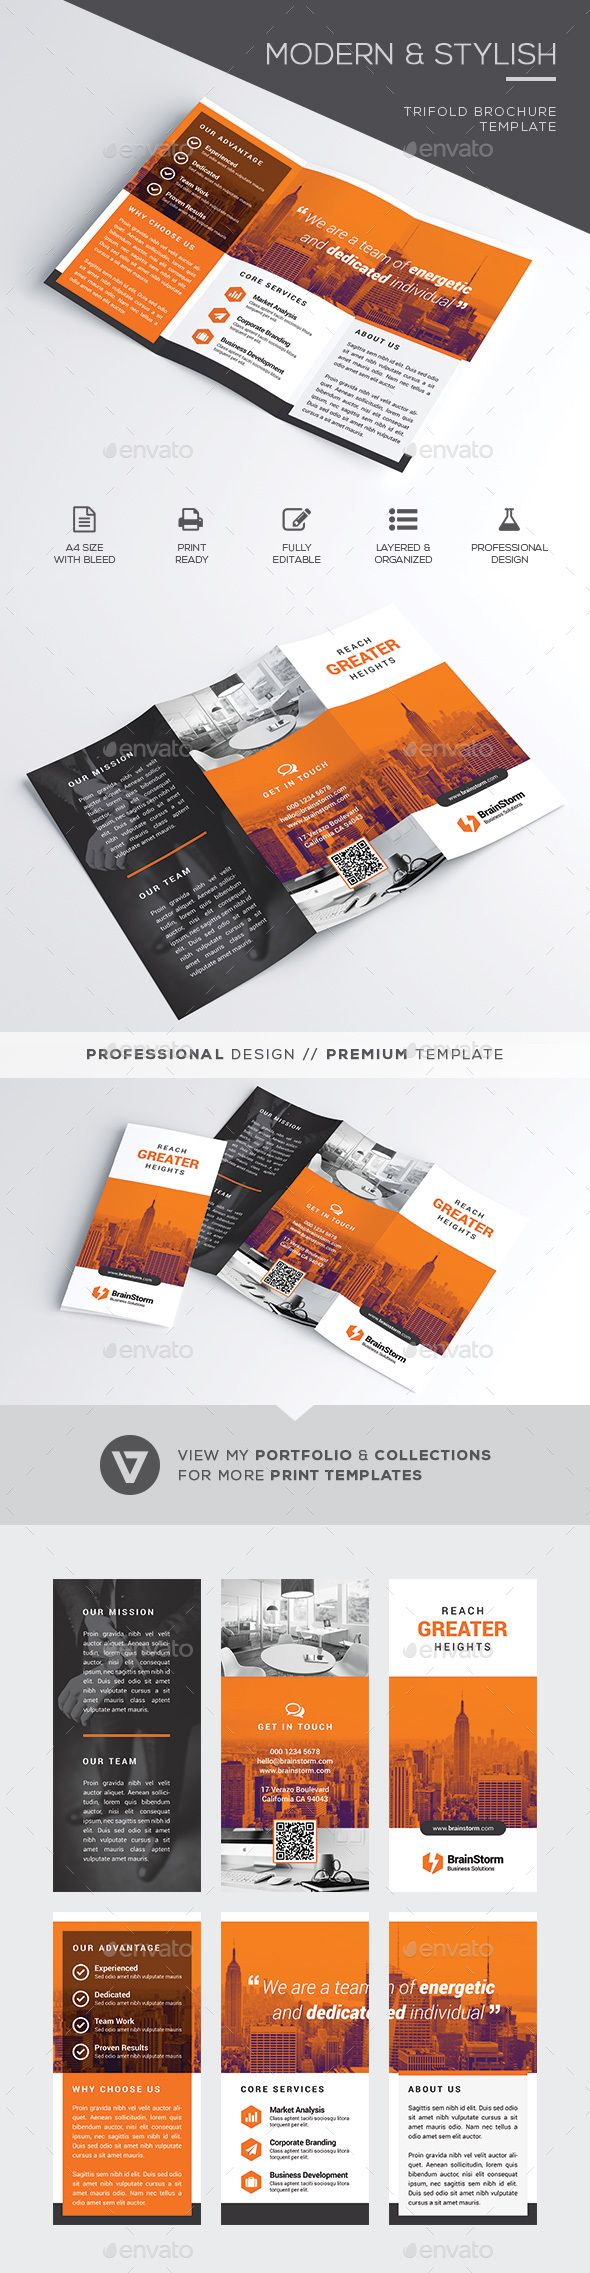 Trifold Brochure Template by verazo Stylish & Modern Business Trifold Brochure Template A highly versatile corporate trifold brochure suitable for all business indust